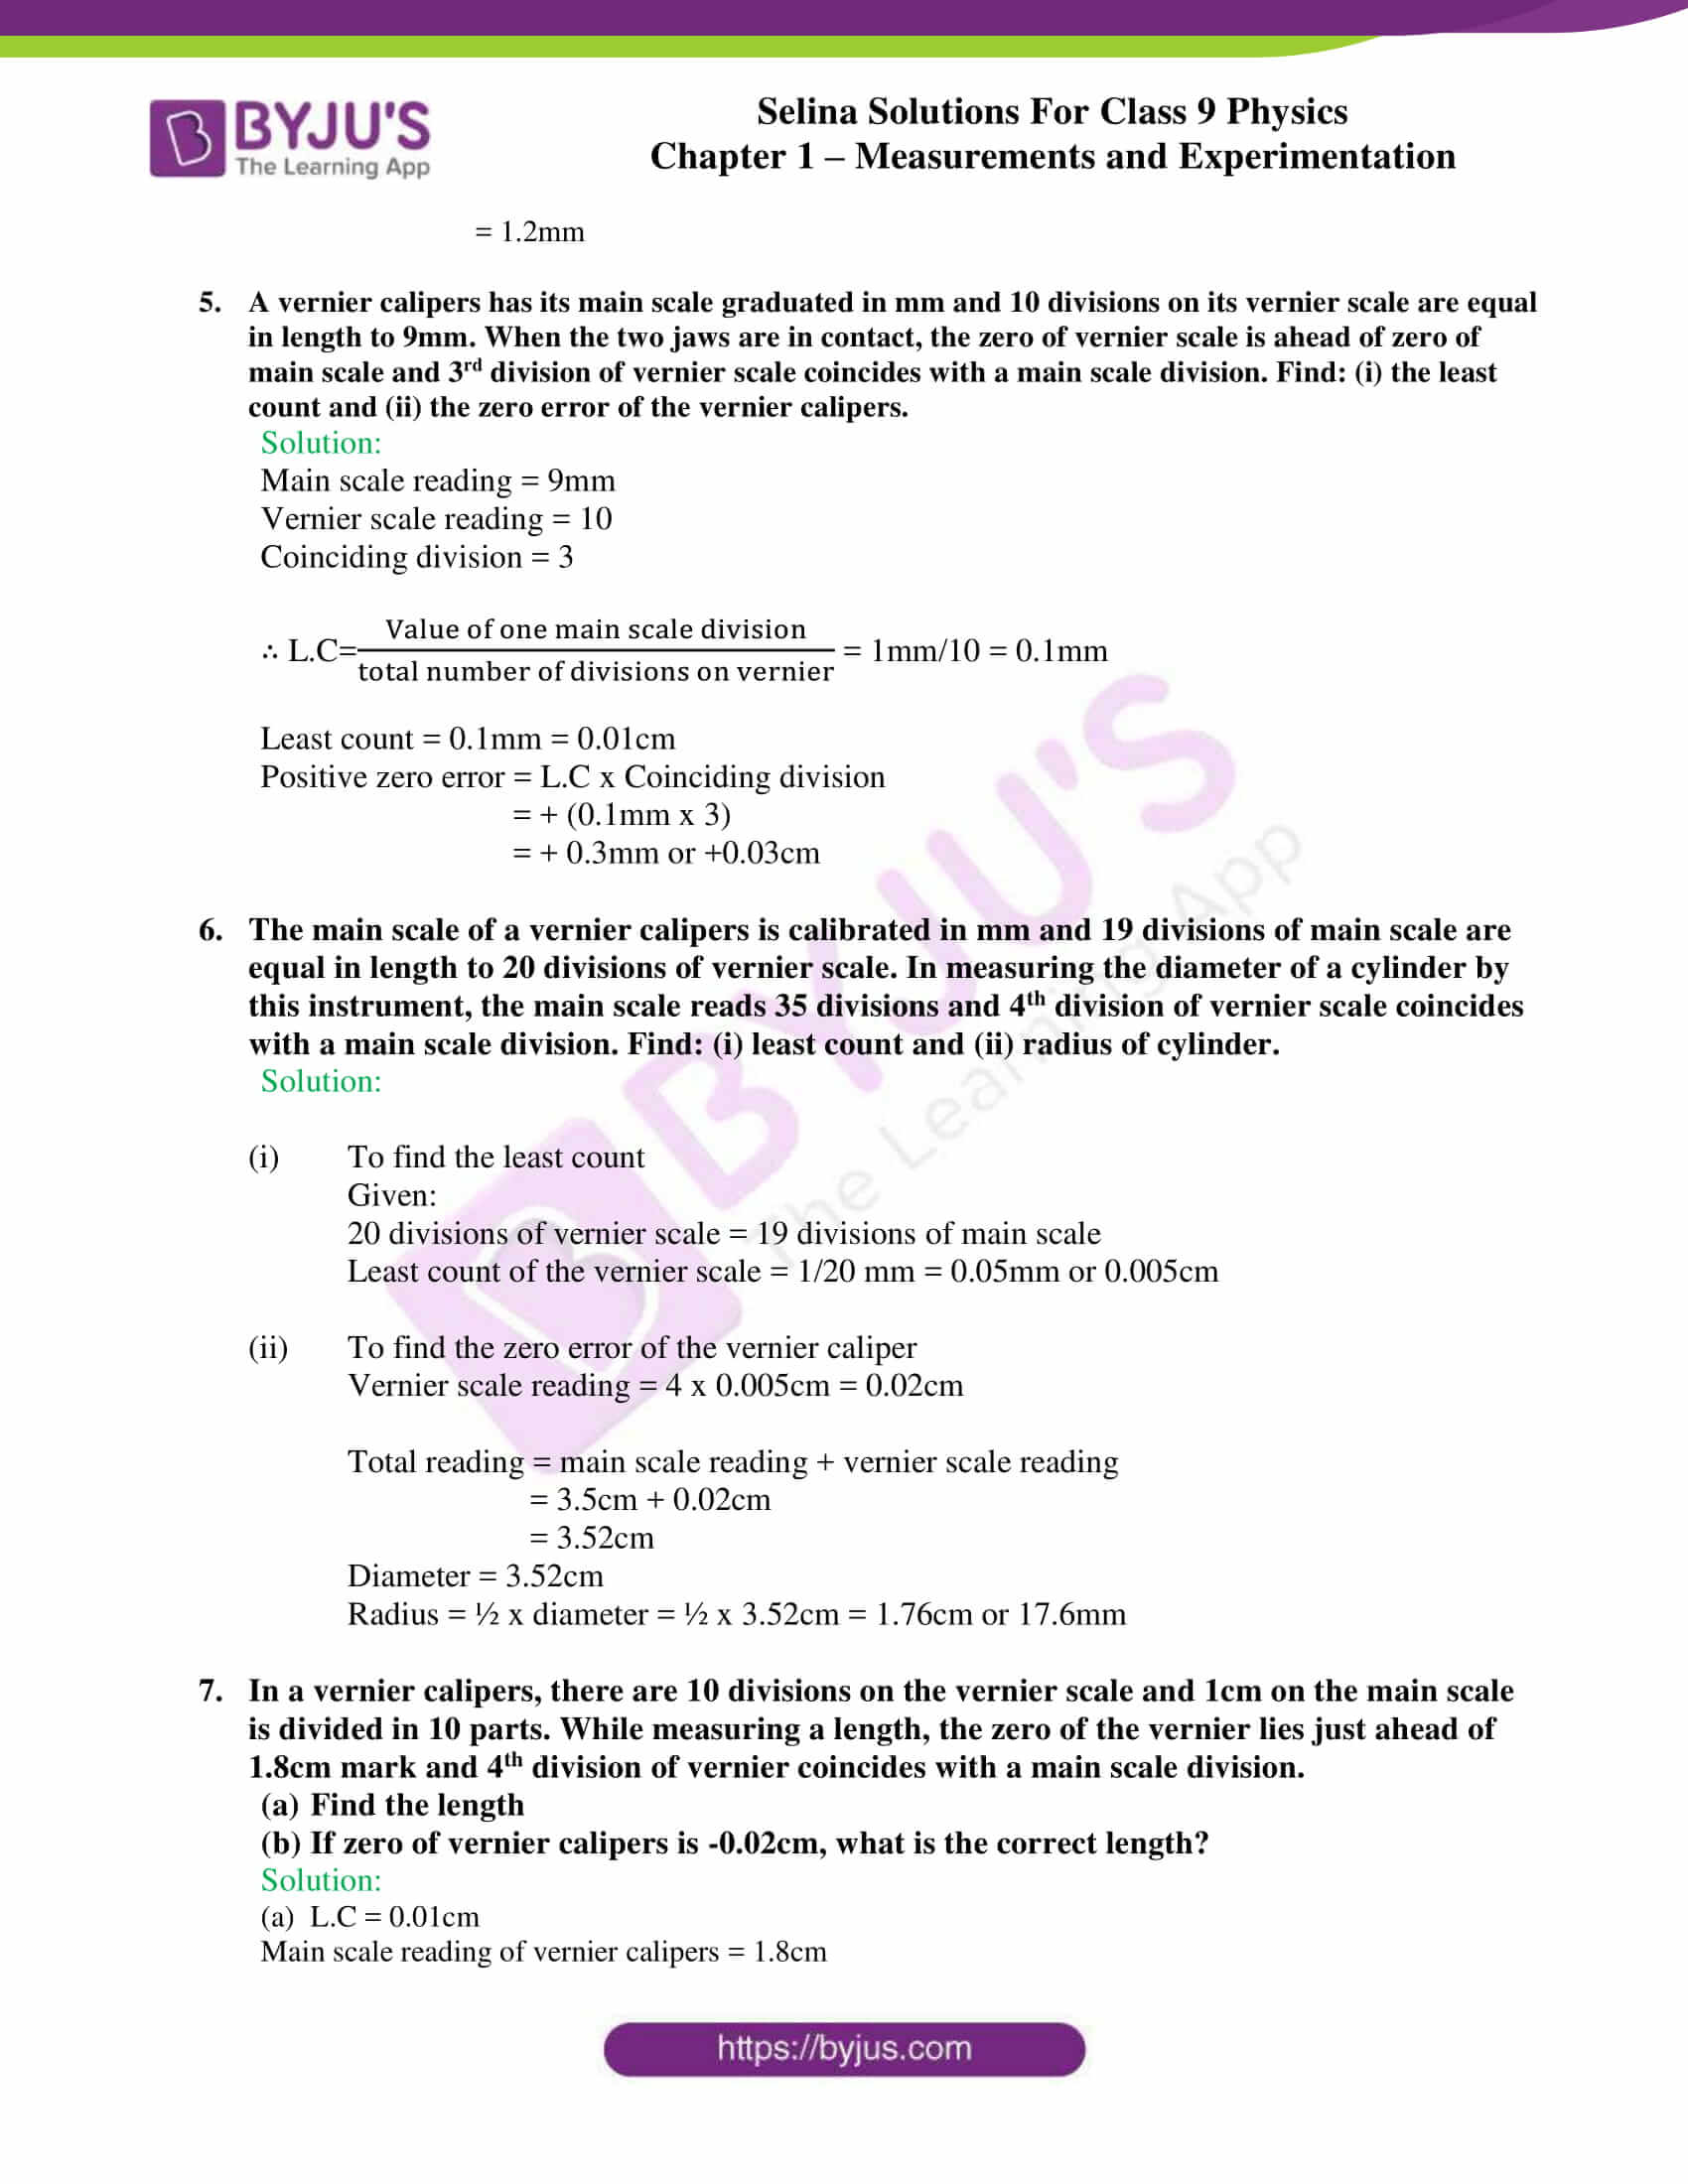 selina solutions class 9 physics chapter 1 Measurements and Experimentation part 21